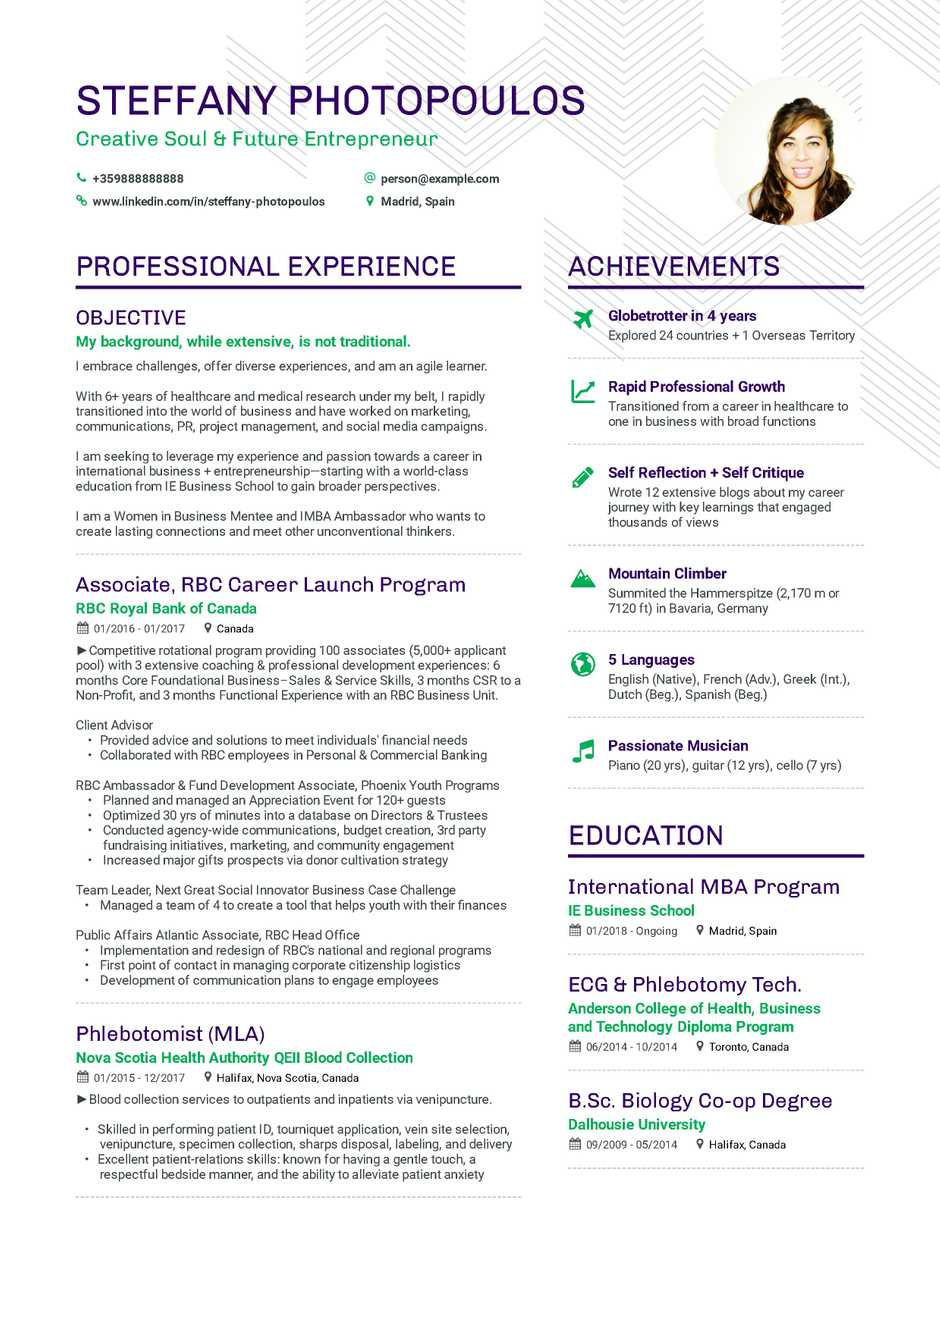 Commercial Banker Resume The Ultimate 2019 Resume Examples And Resume Format Guide